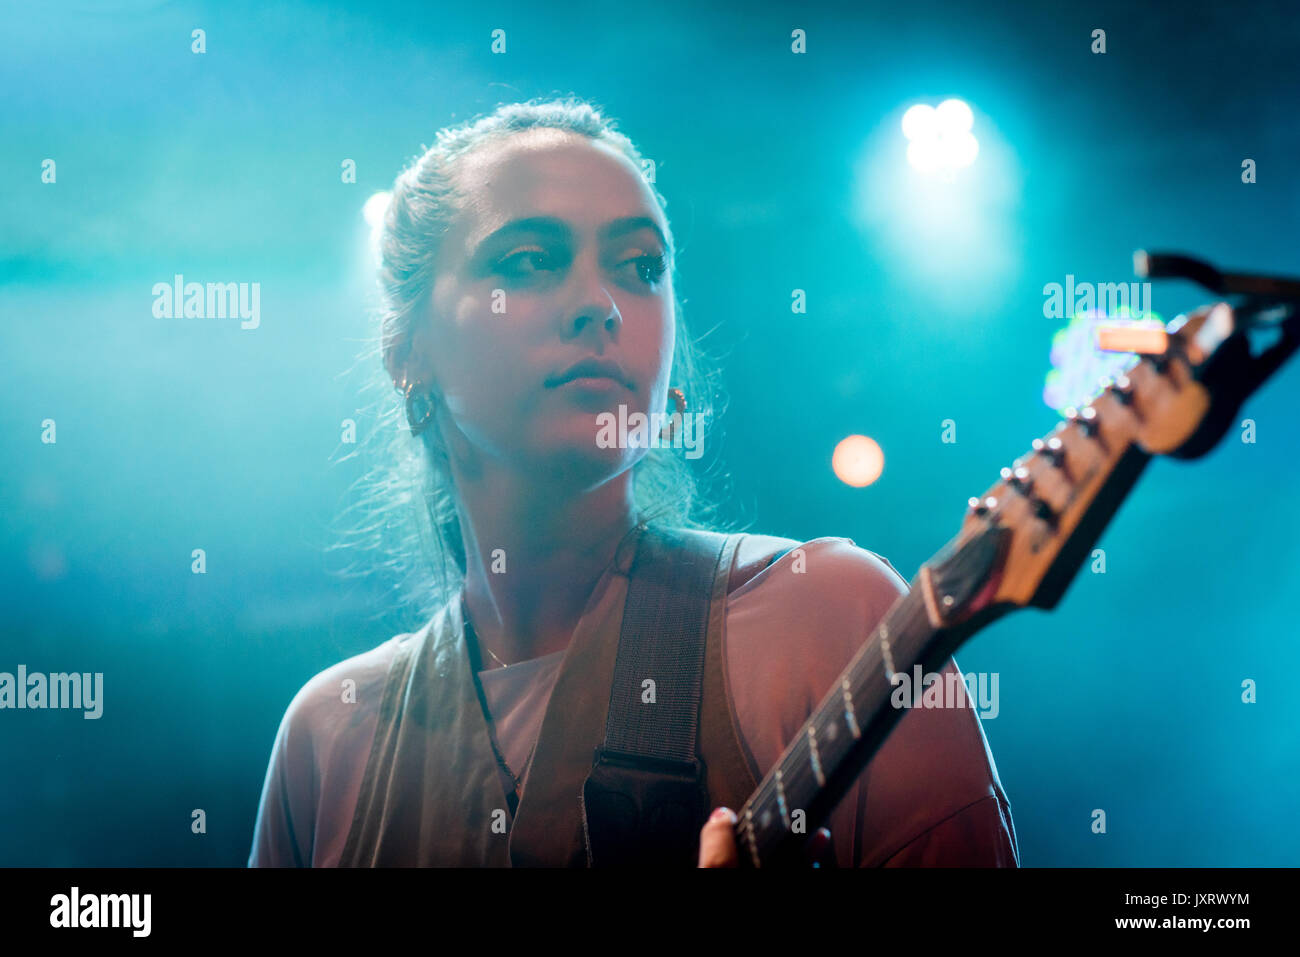 Edinburgh, Scotland, UK. 16th Aug, 2017. Ana Perrote, lead singer in the Madrid band Hinds onstage at Summerhall, Stock Photo